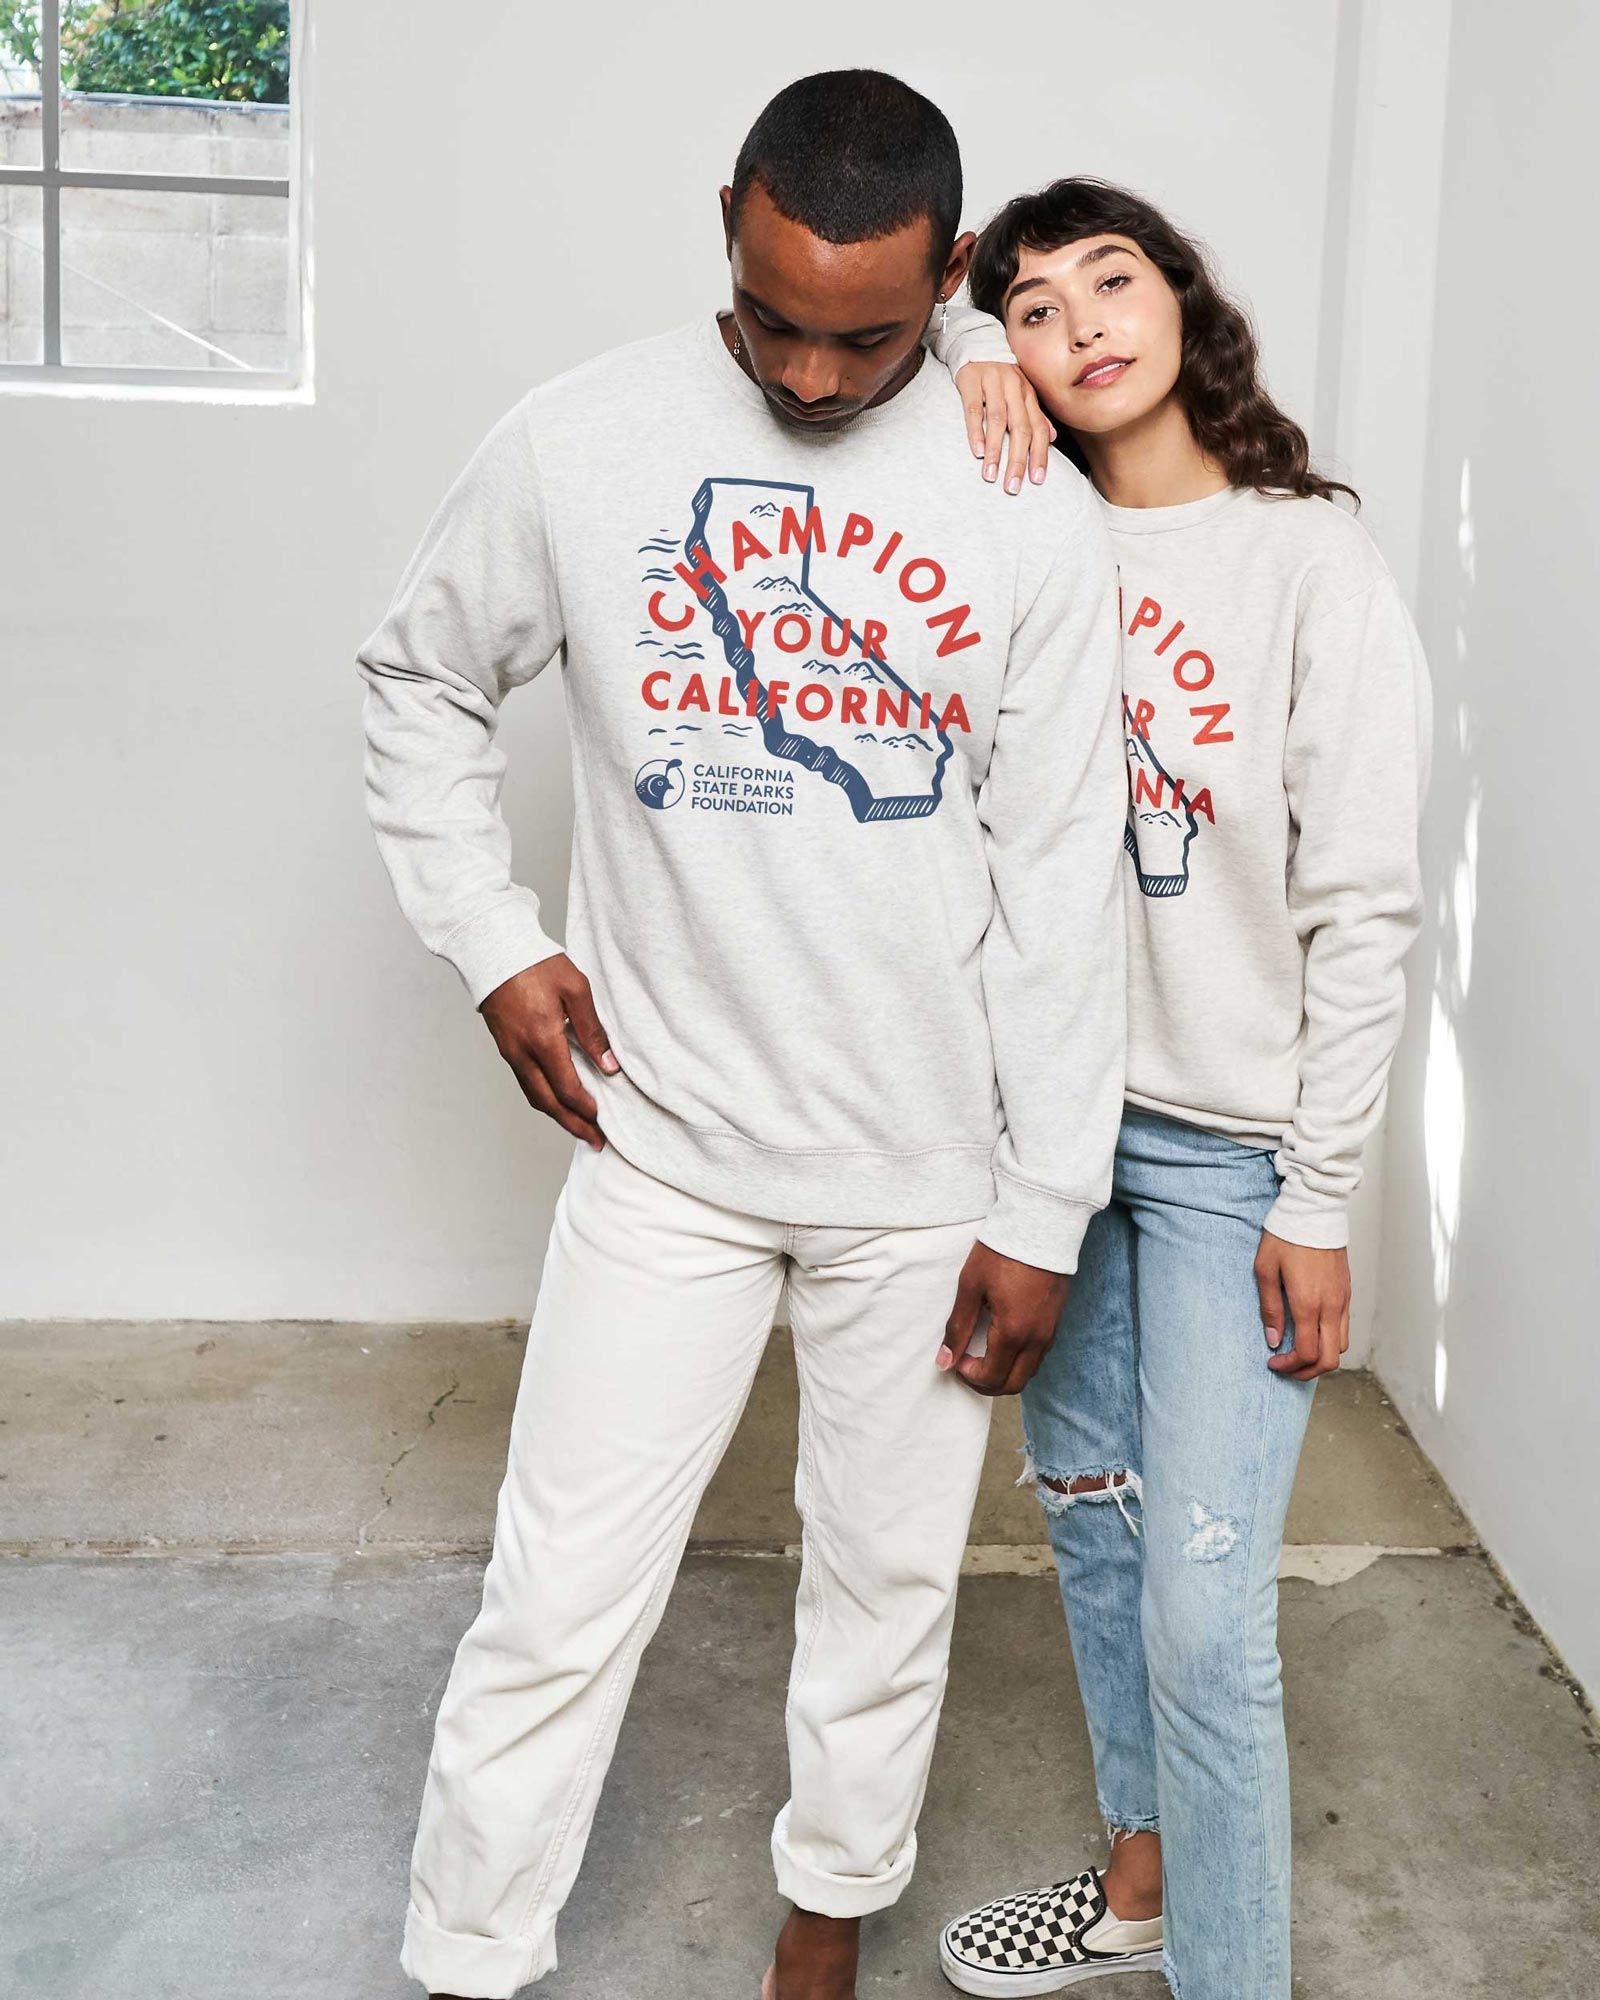 Champion Your California Crew Sweatshirt